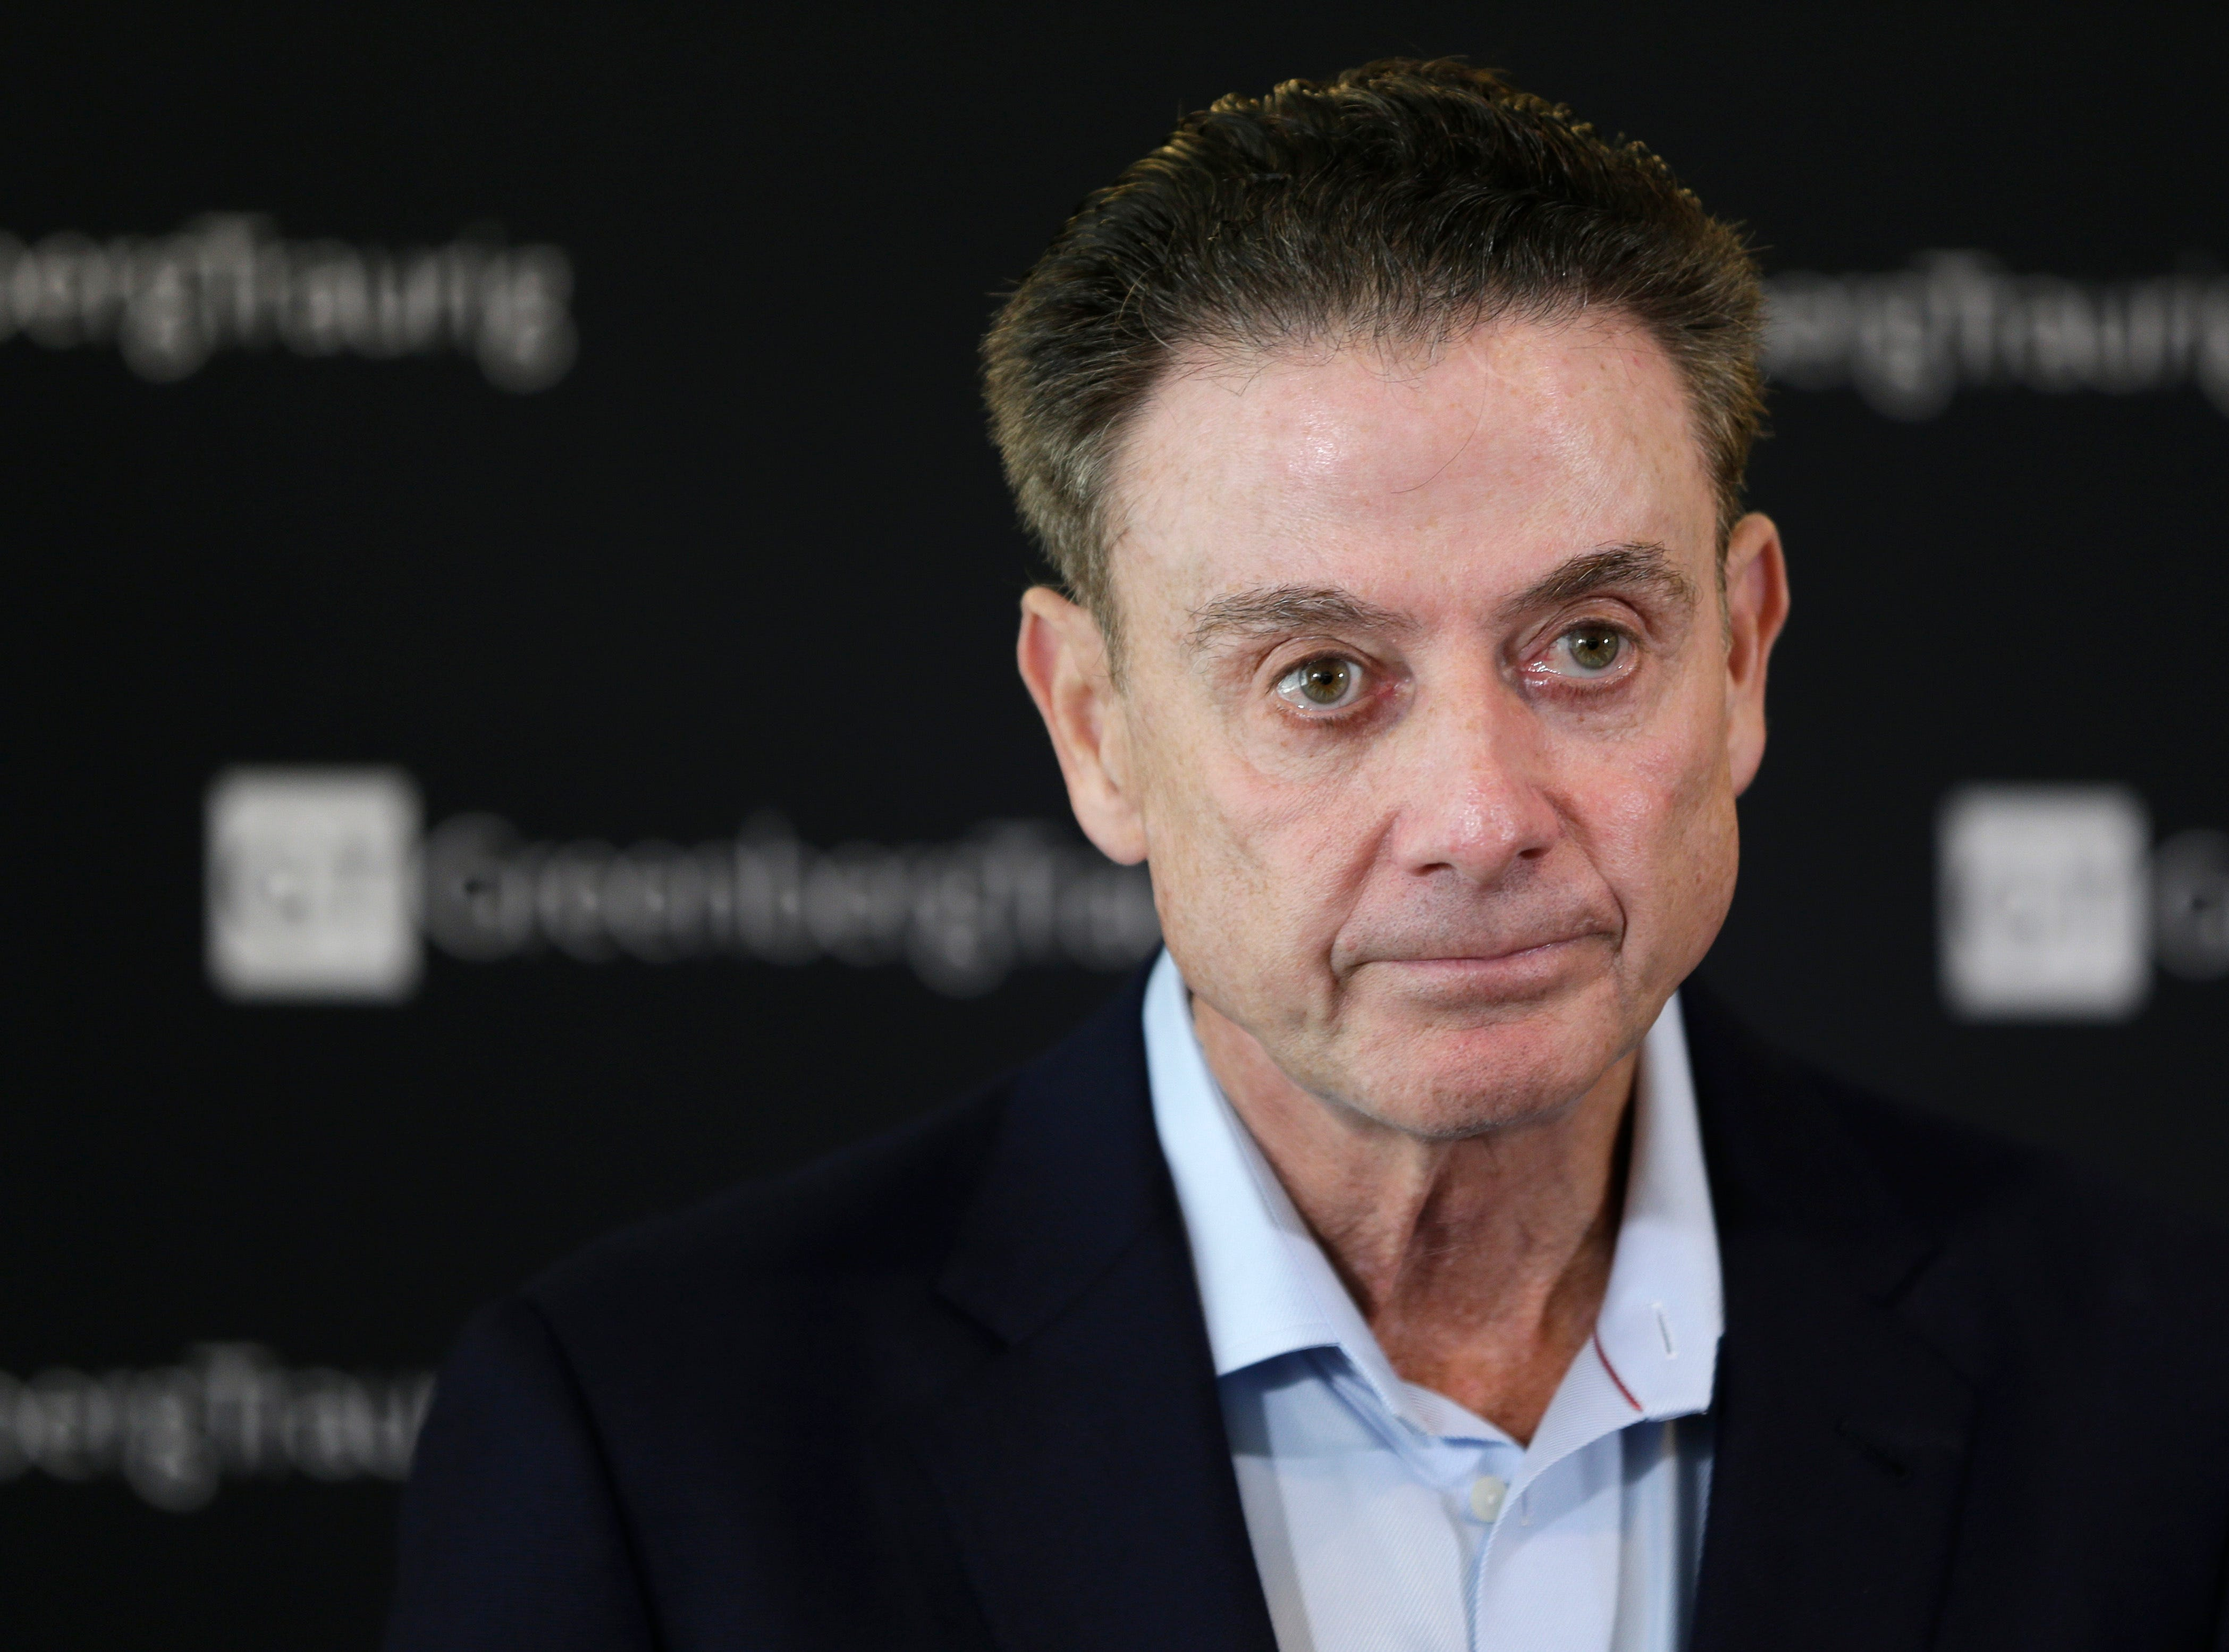 Rick Pitino didn't know of payment to Brian Bowen, former Adidas fixer testifies